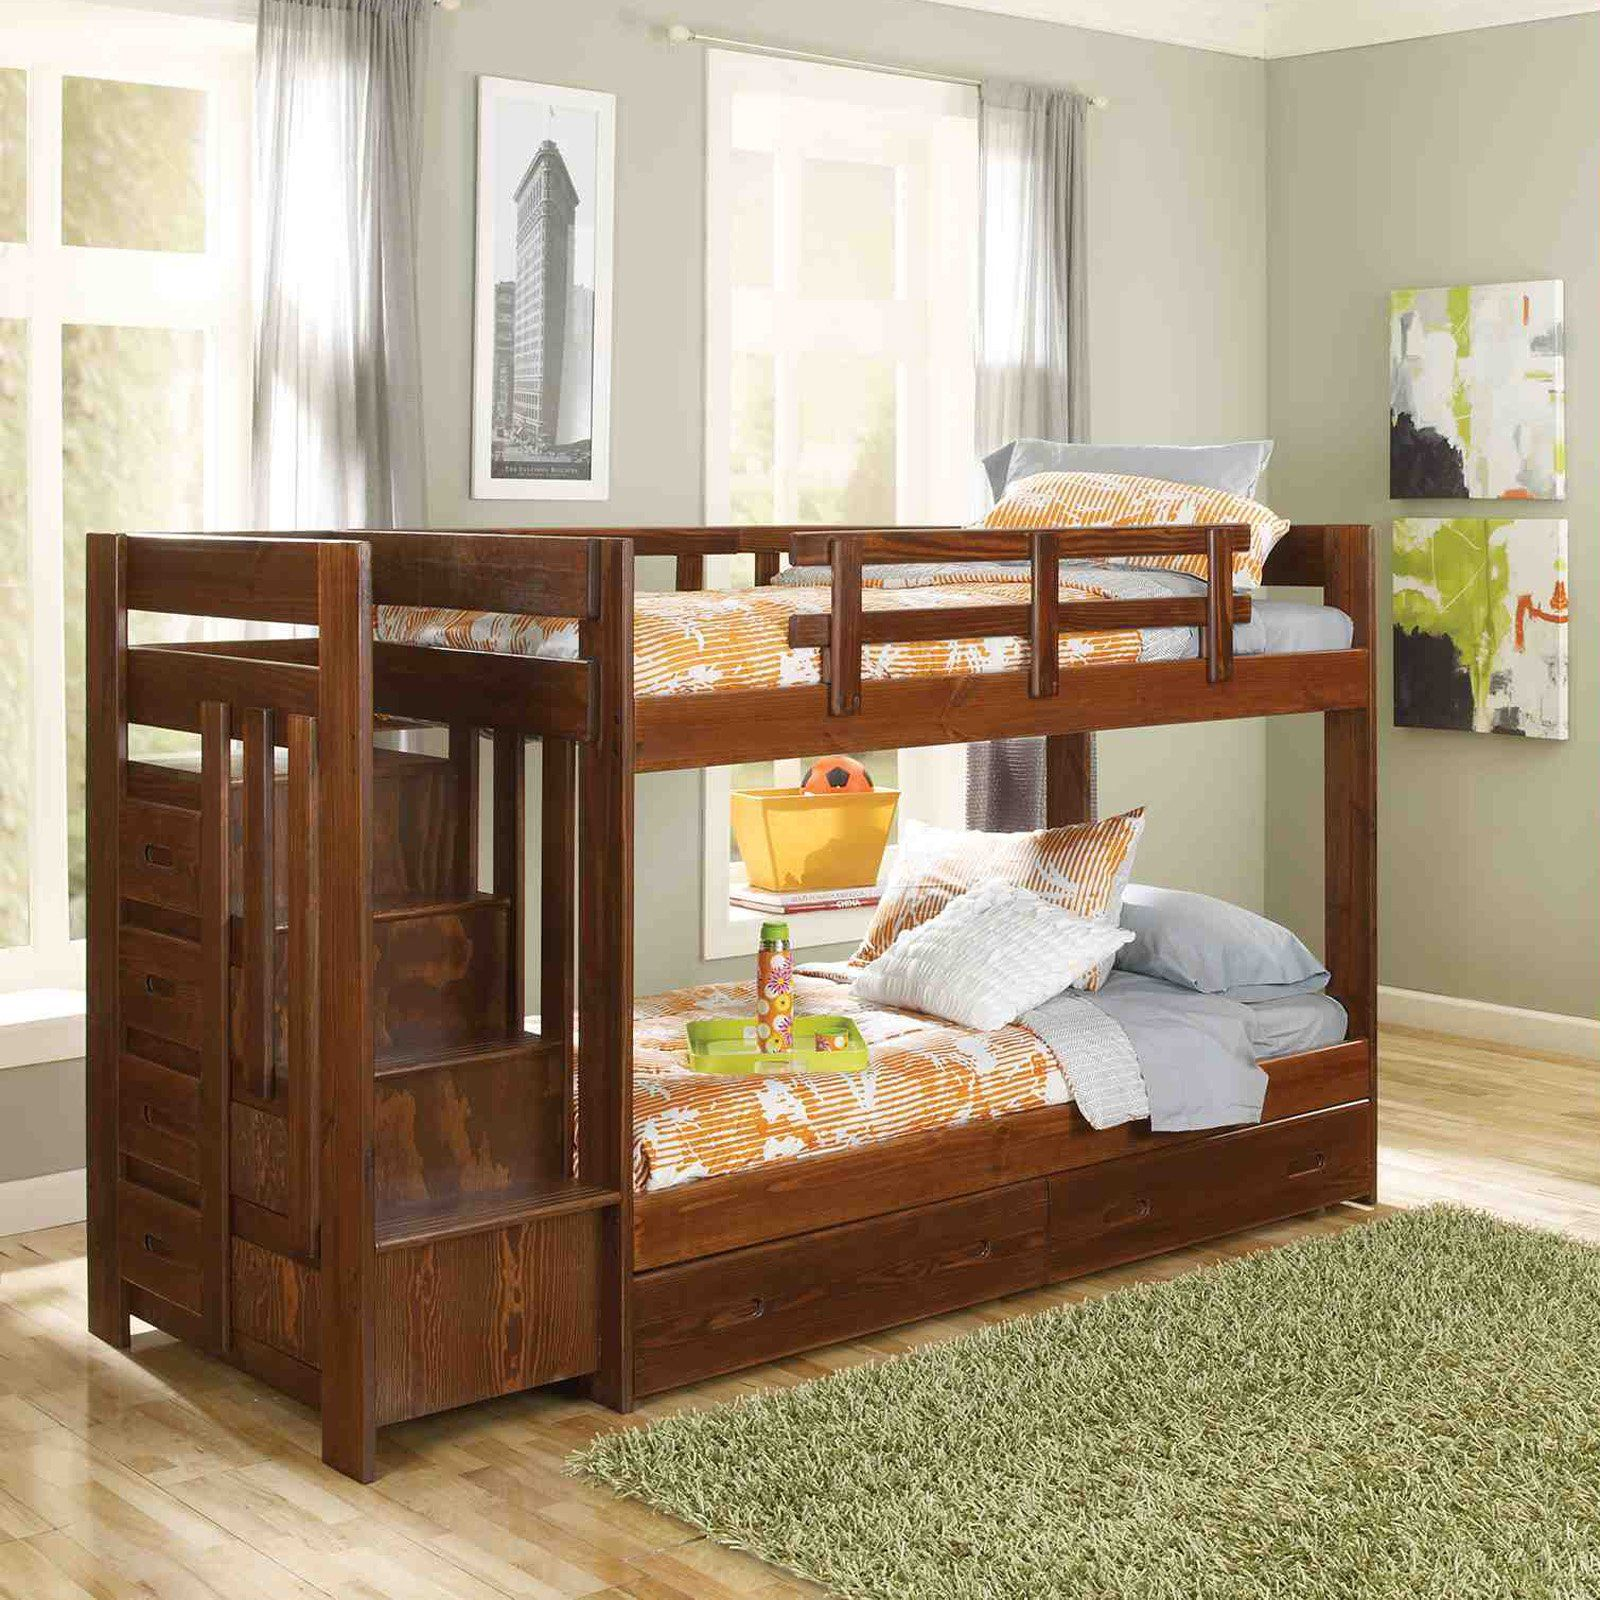 Bunk bed with stairs - Heartland Twin Over Twin Bunk Bed With Stairs Chocolate